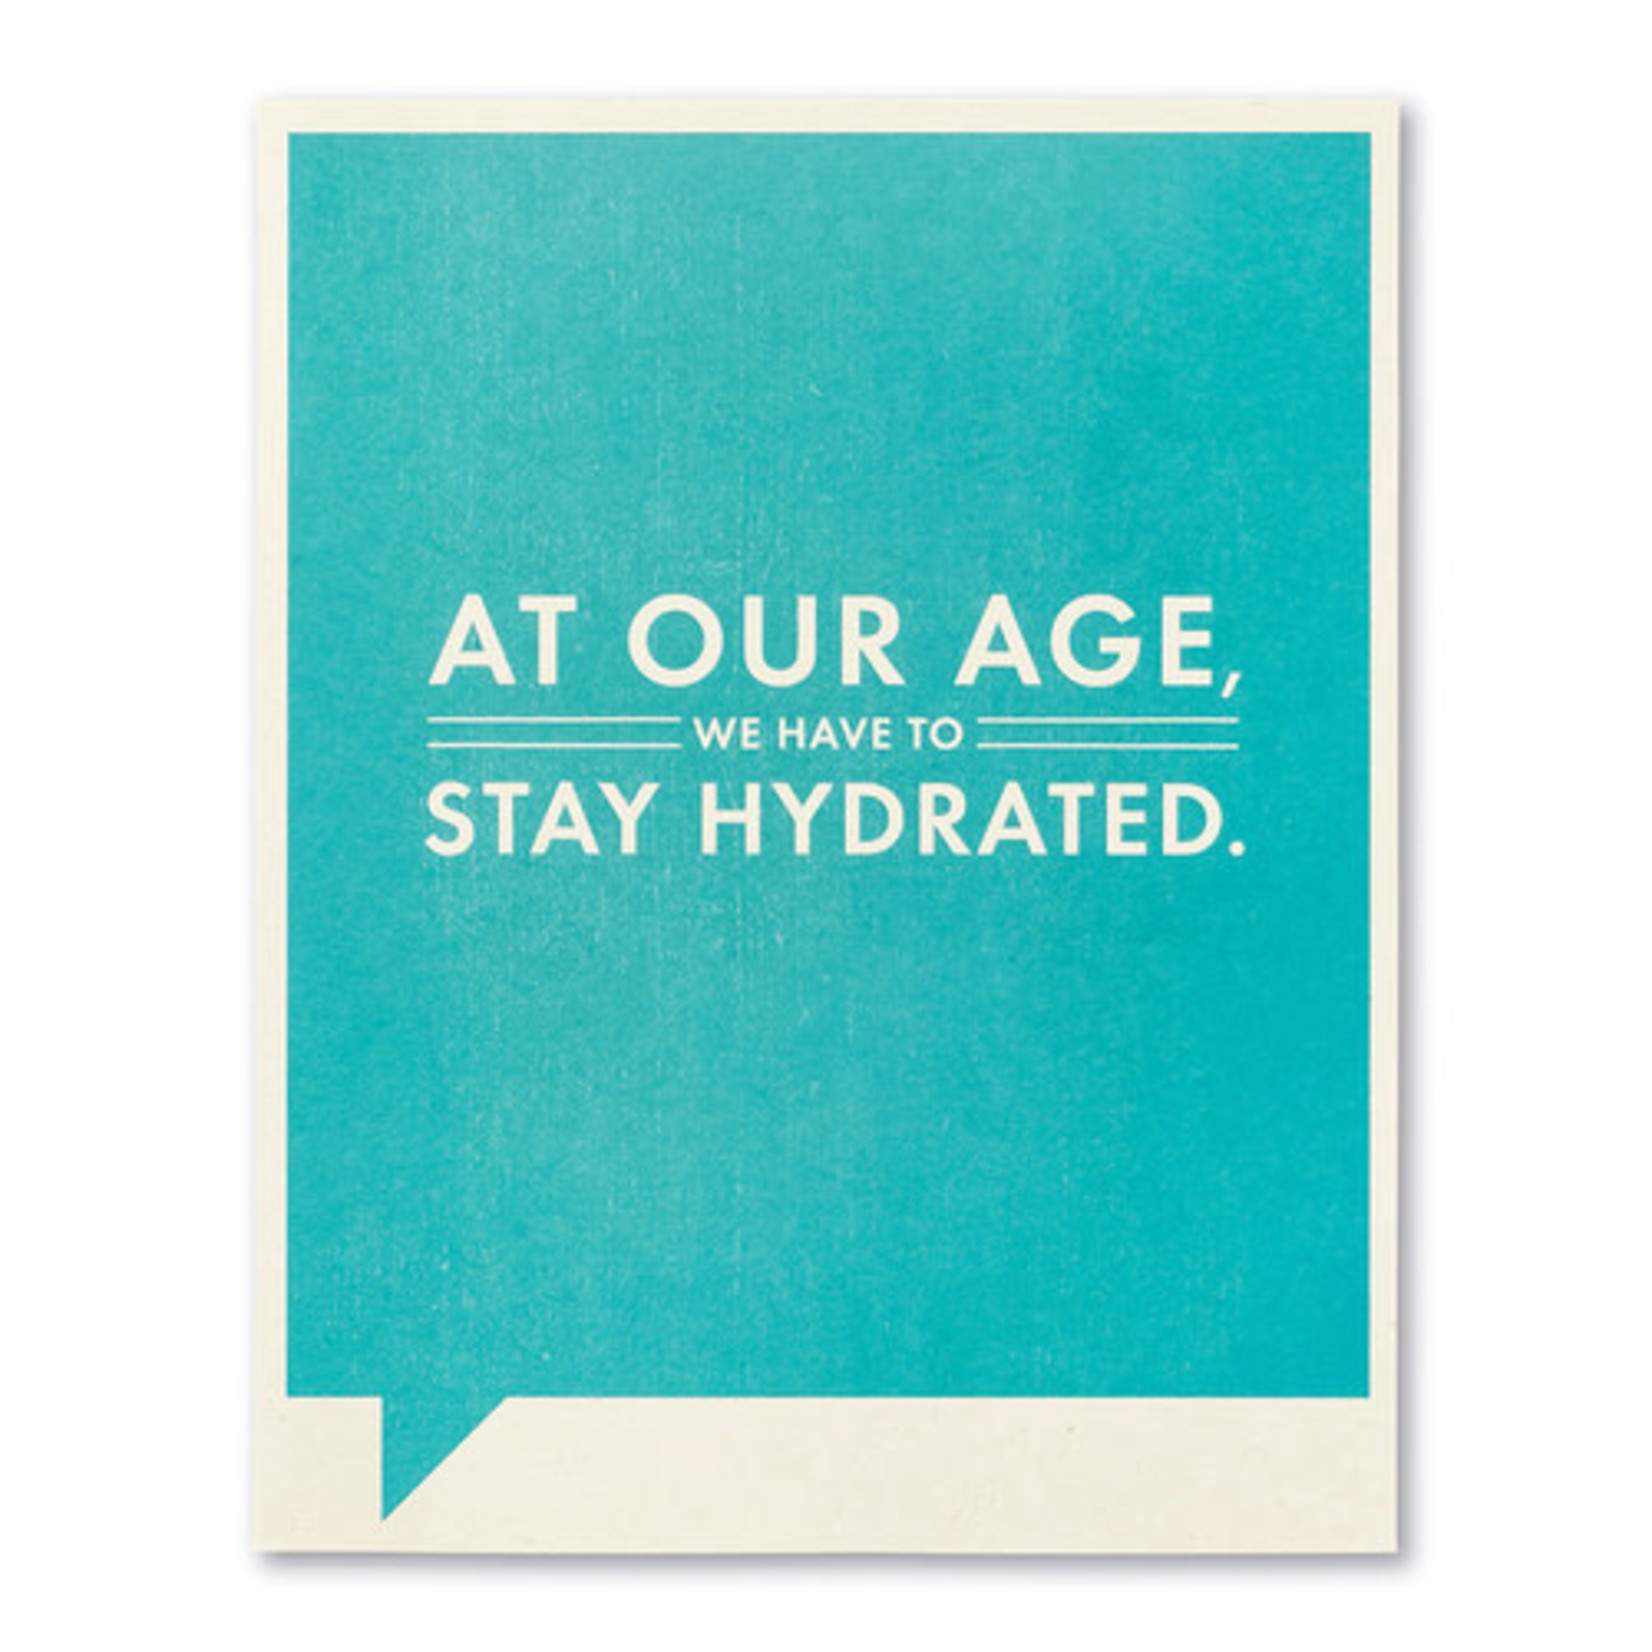 AT OUR AGE CARD